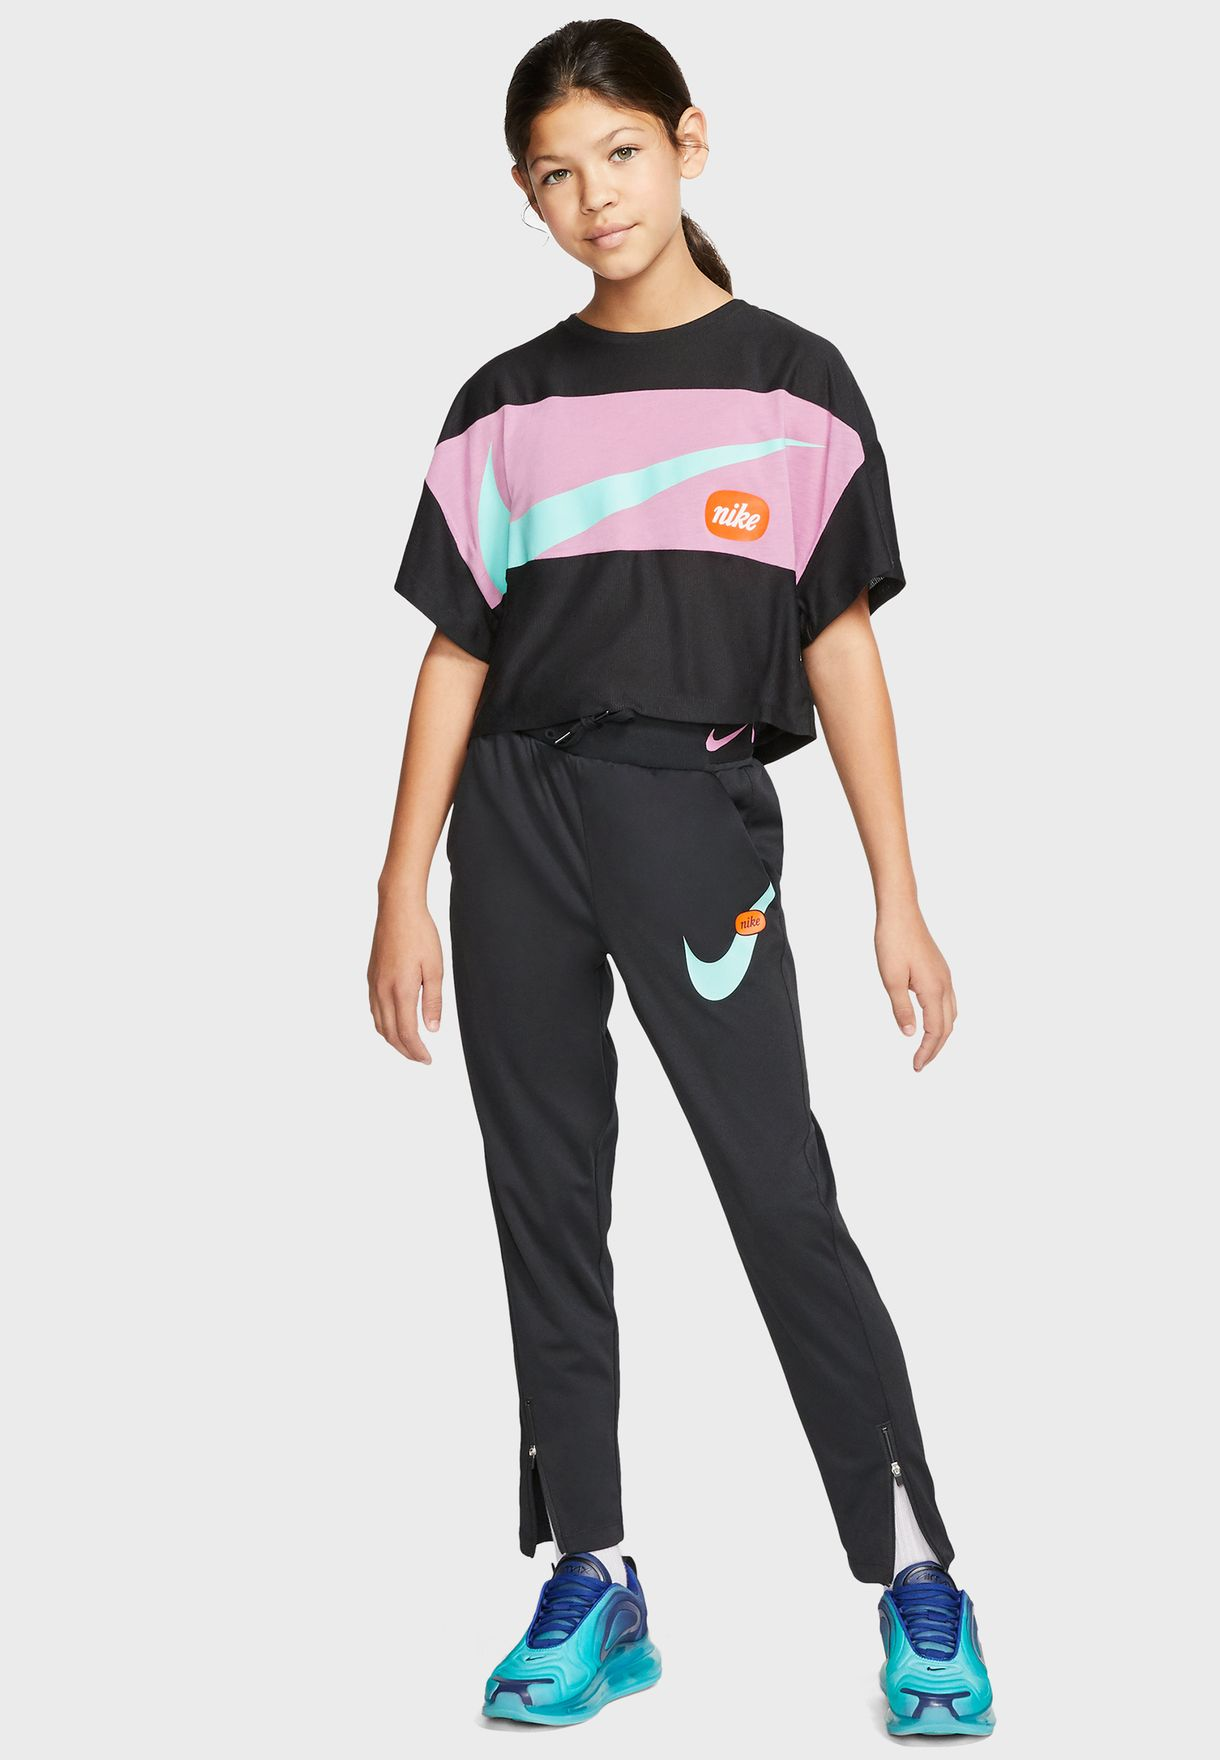 Youth Swoosh Cropped T-Shirt